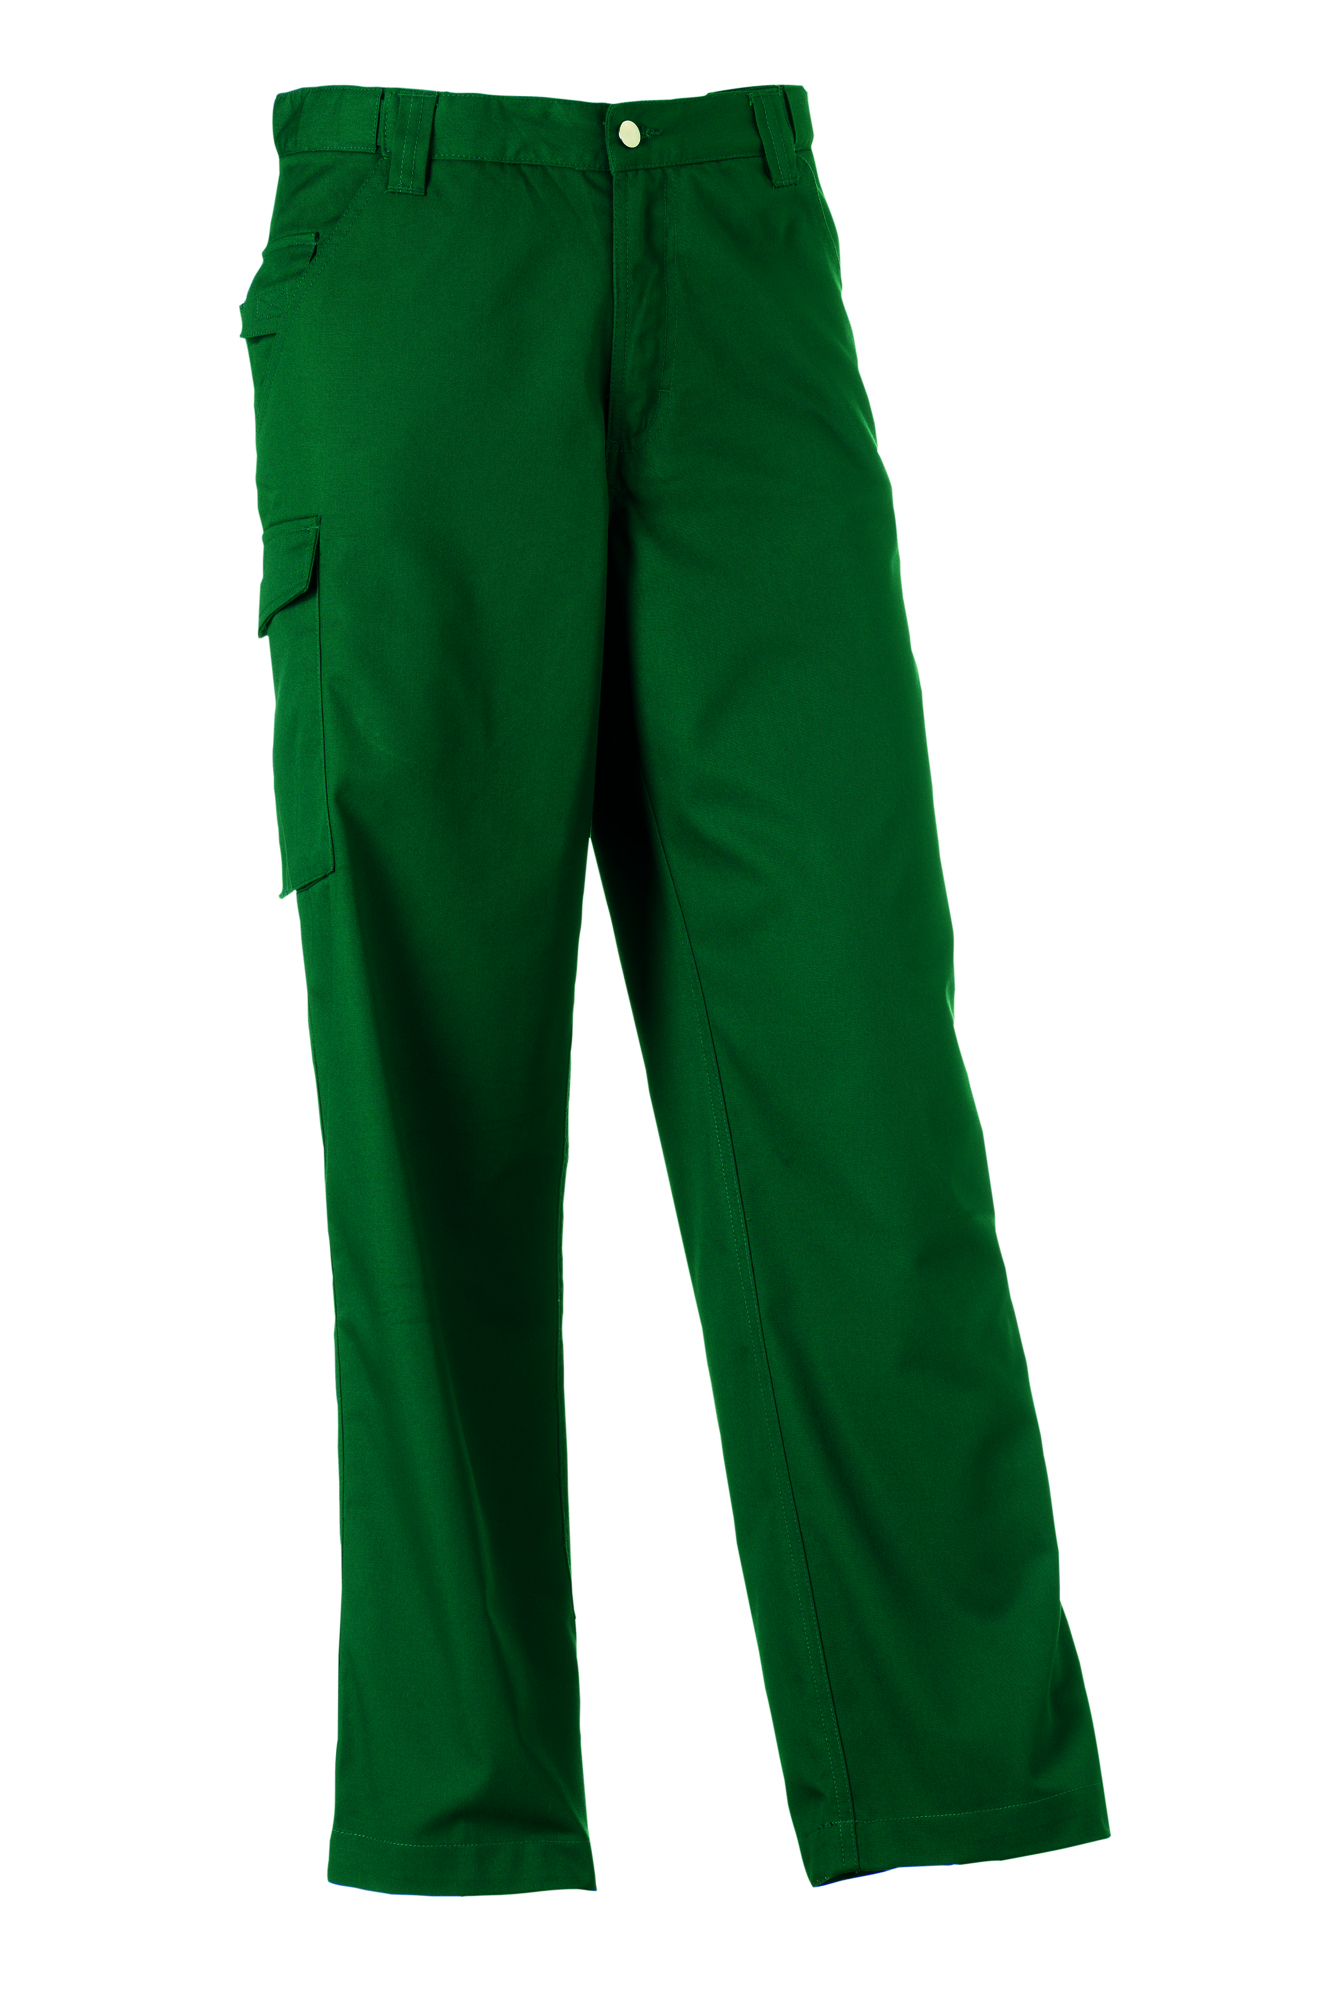 Polycotton Twill Trousers - Bottle Green - 28-32